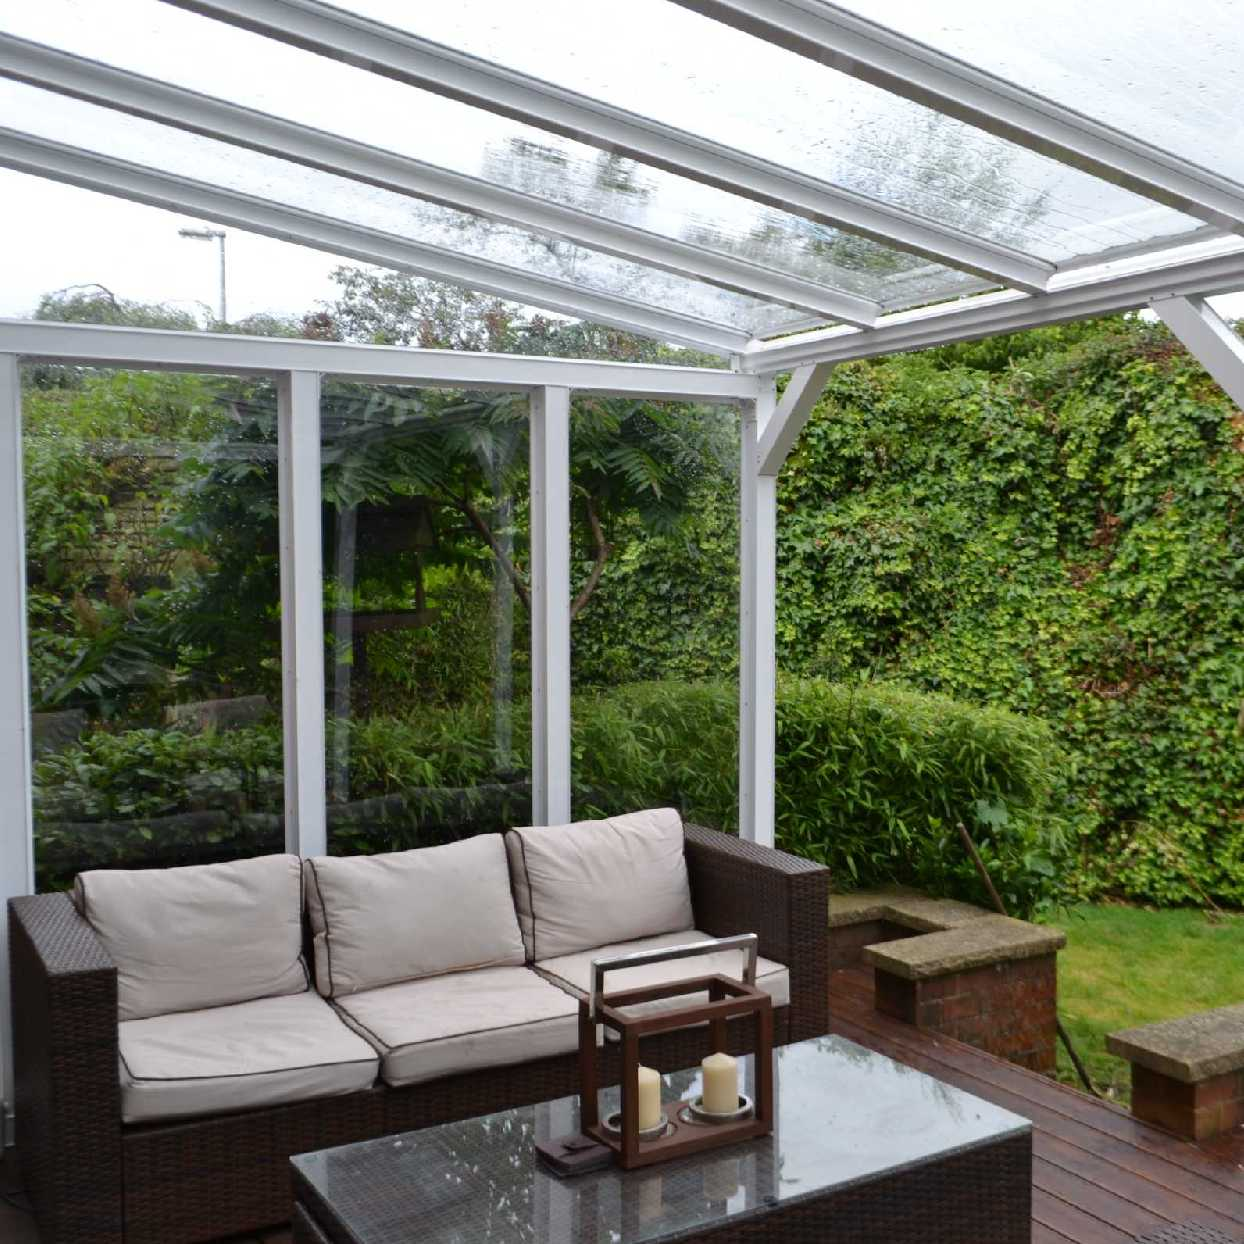 Omega Smart White Lean-To Canopy with 6mm Glass Clear Plate Polycarbonate Glazing - 4.2m (W) x 3.0m (P), (3) Supporting Posts